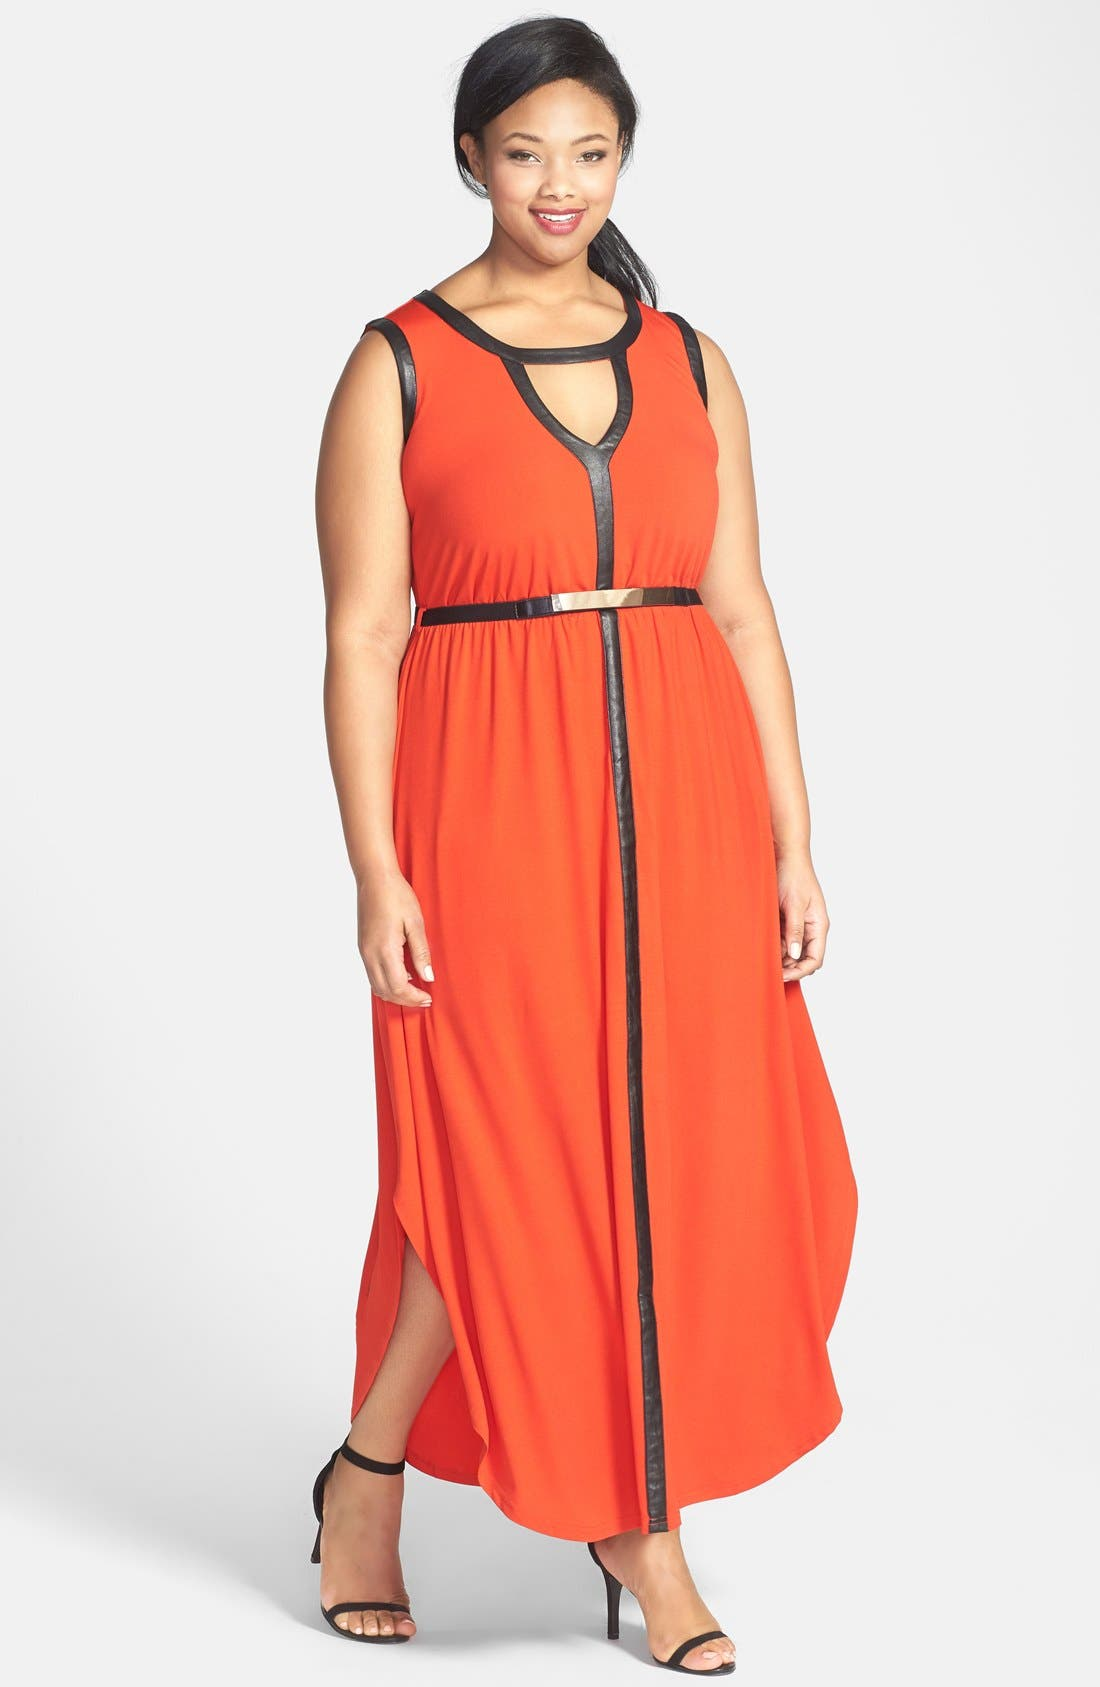 Alternate Image 1 Selected - City Chic 'Grecian' Faux Leather Trim Keyhole Maxi Dress (Plus Size)